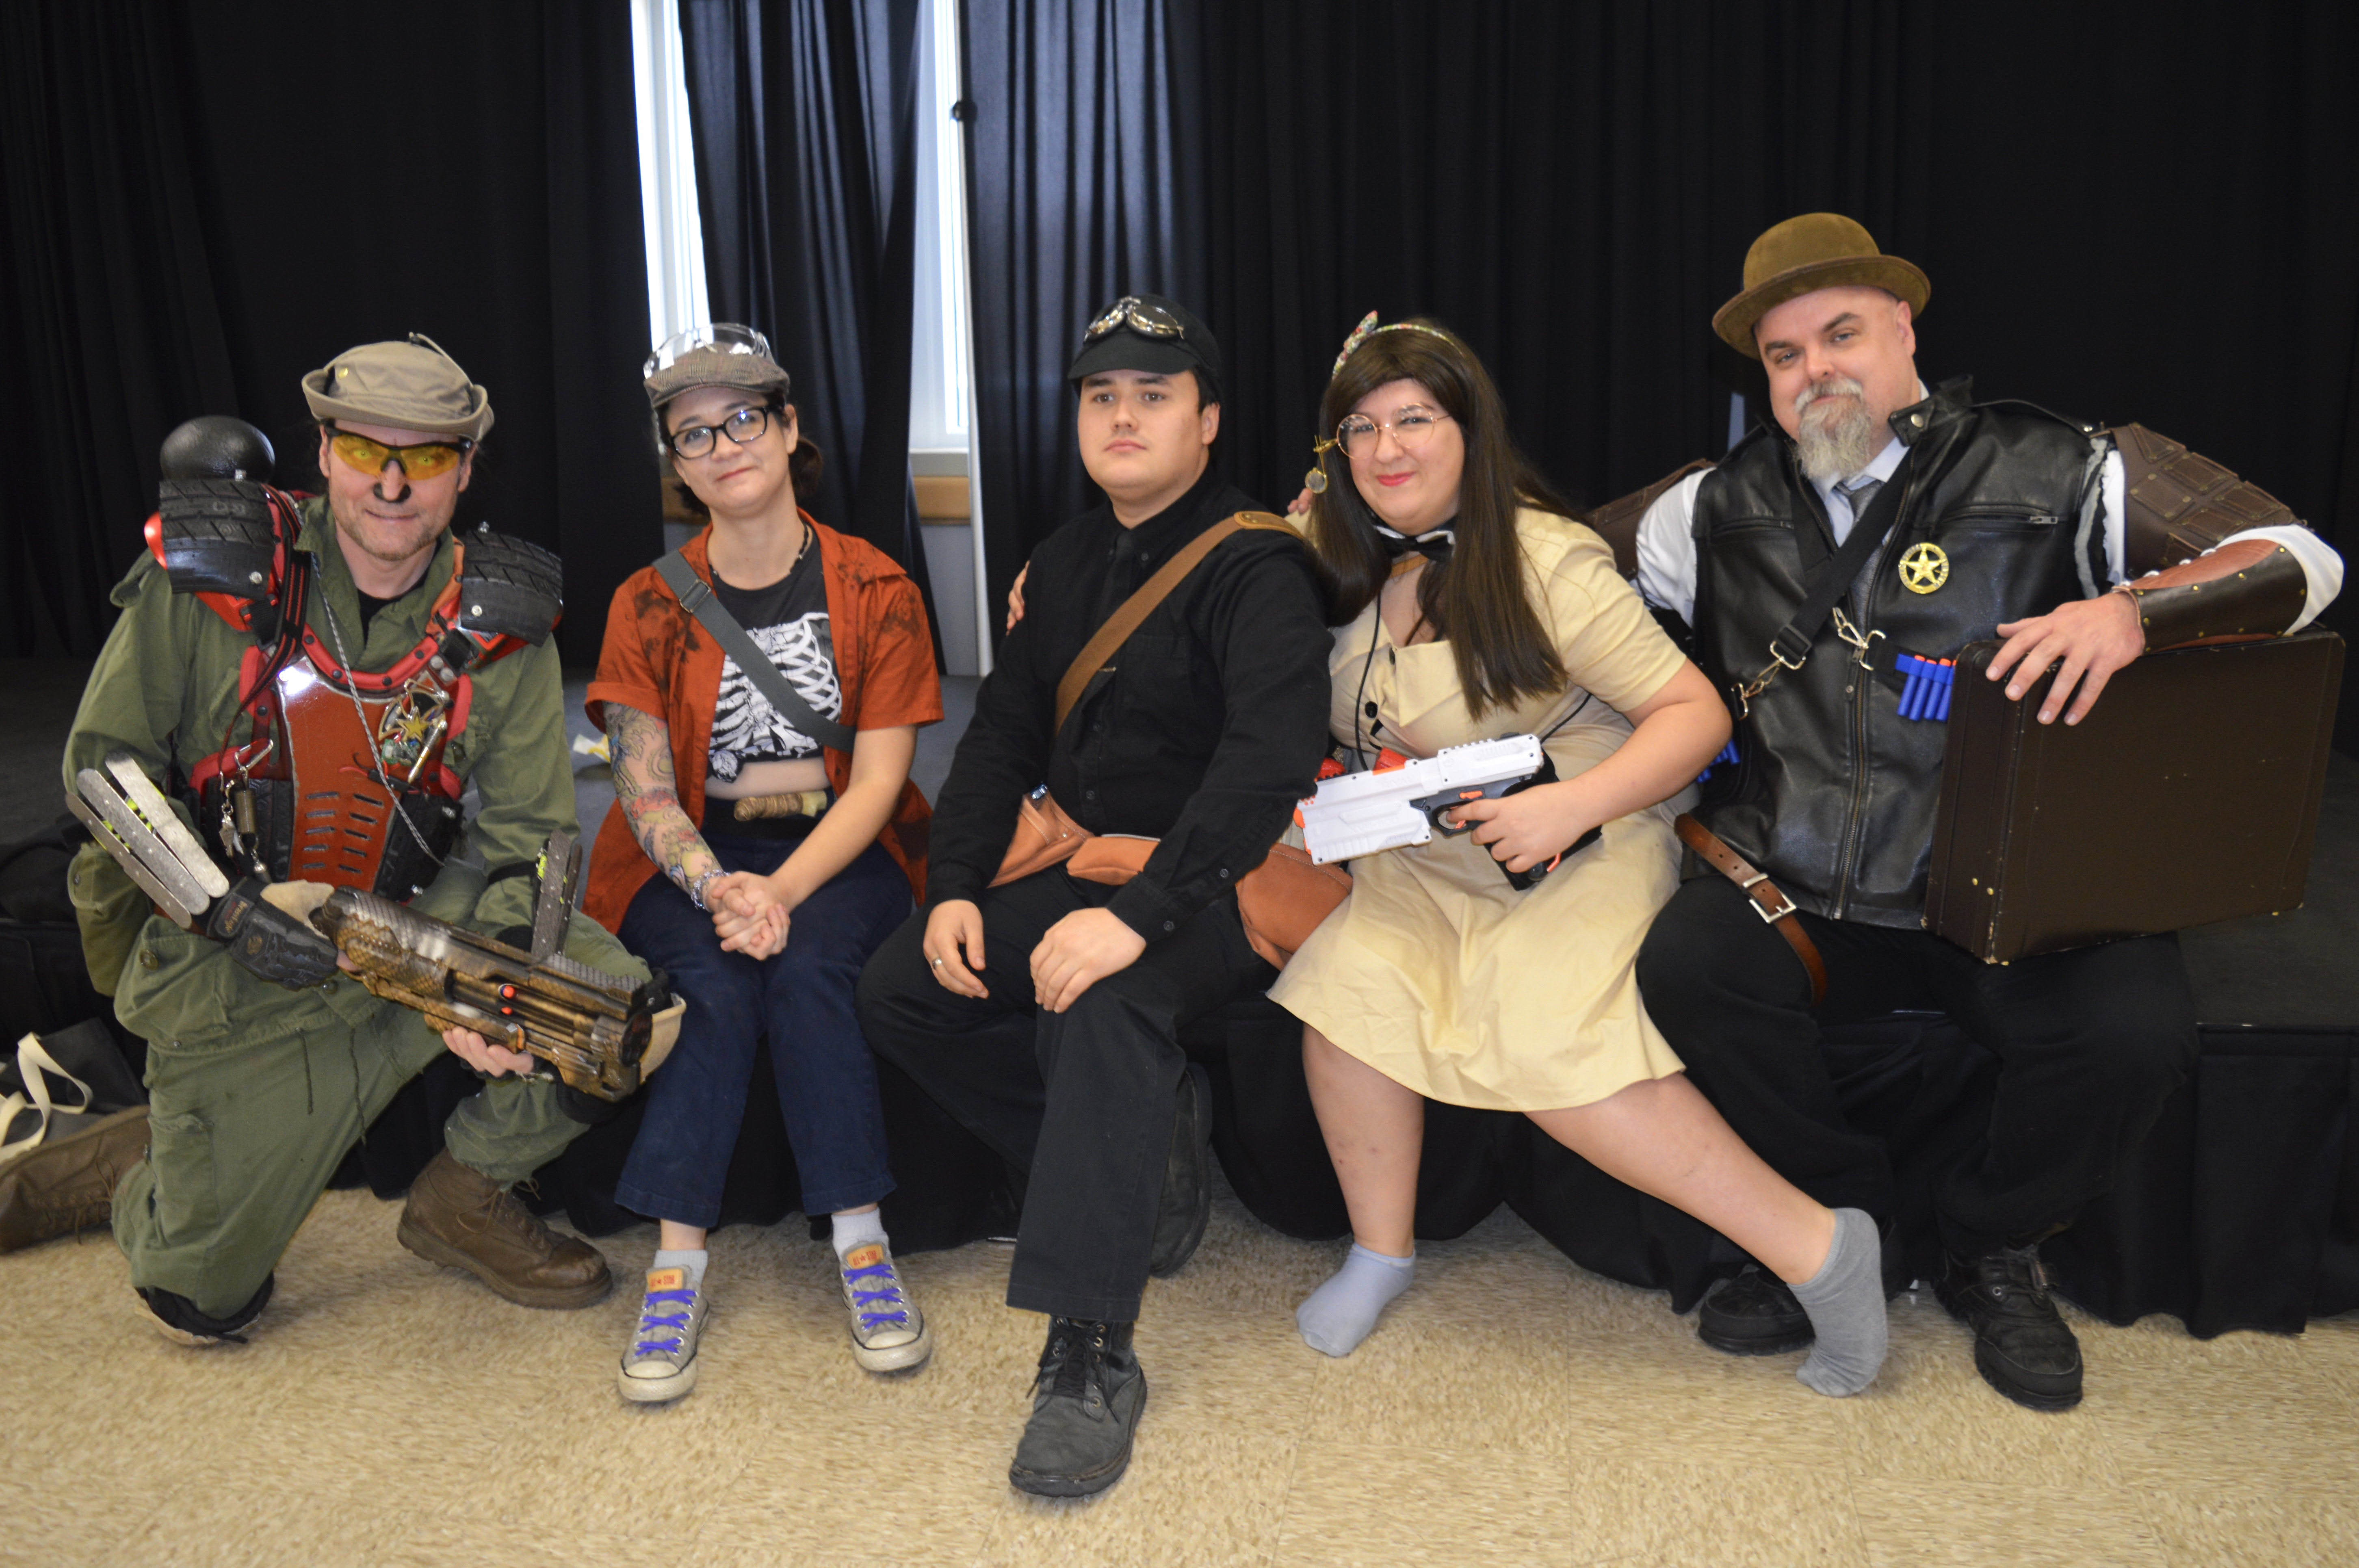 Community embarks on new LARP adventure